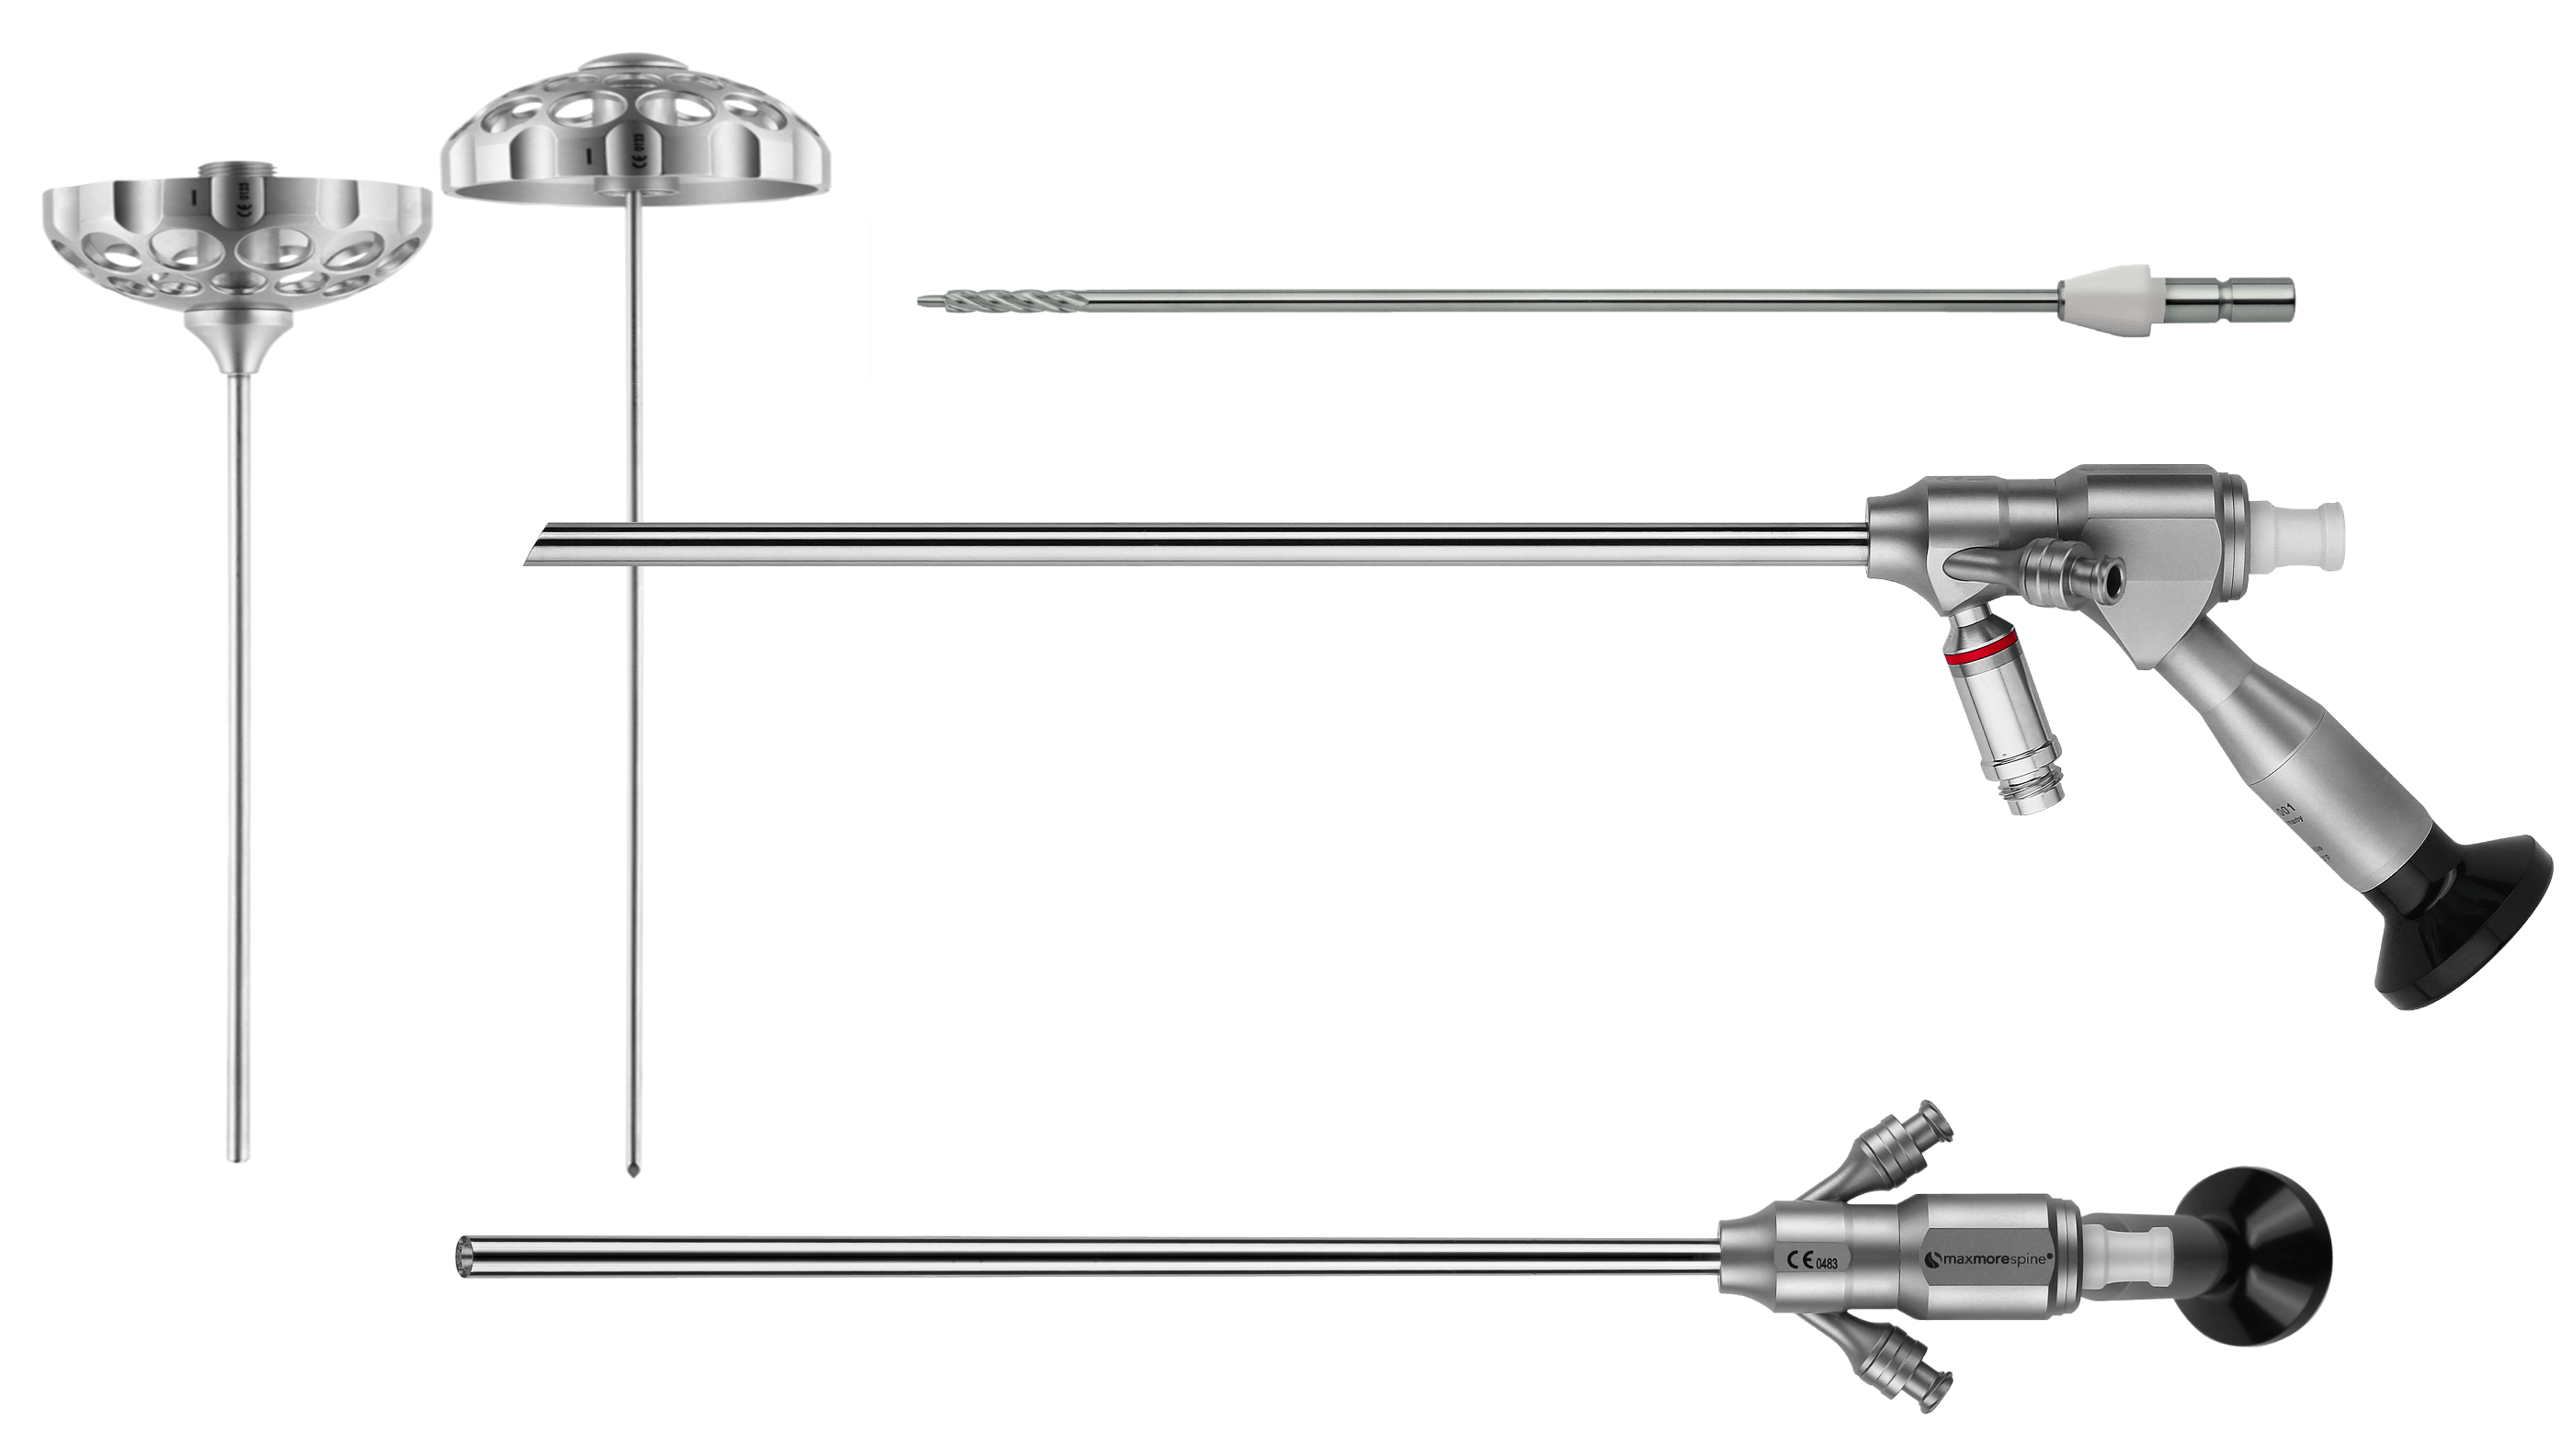 PTED Endoscopic System